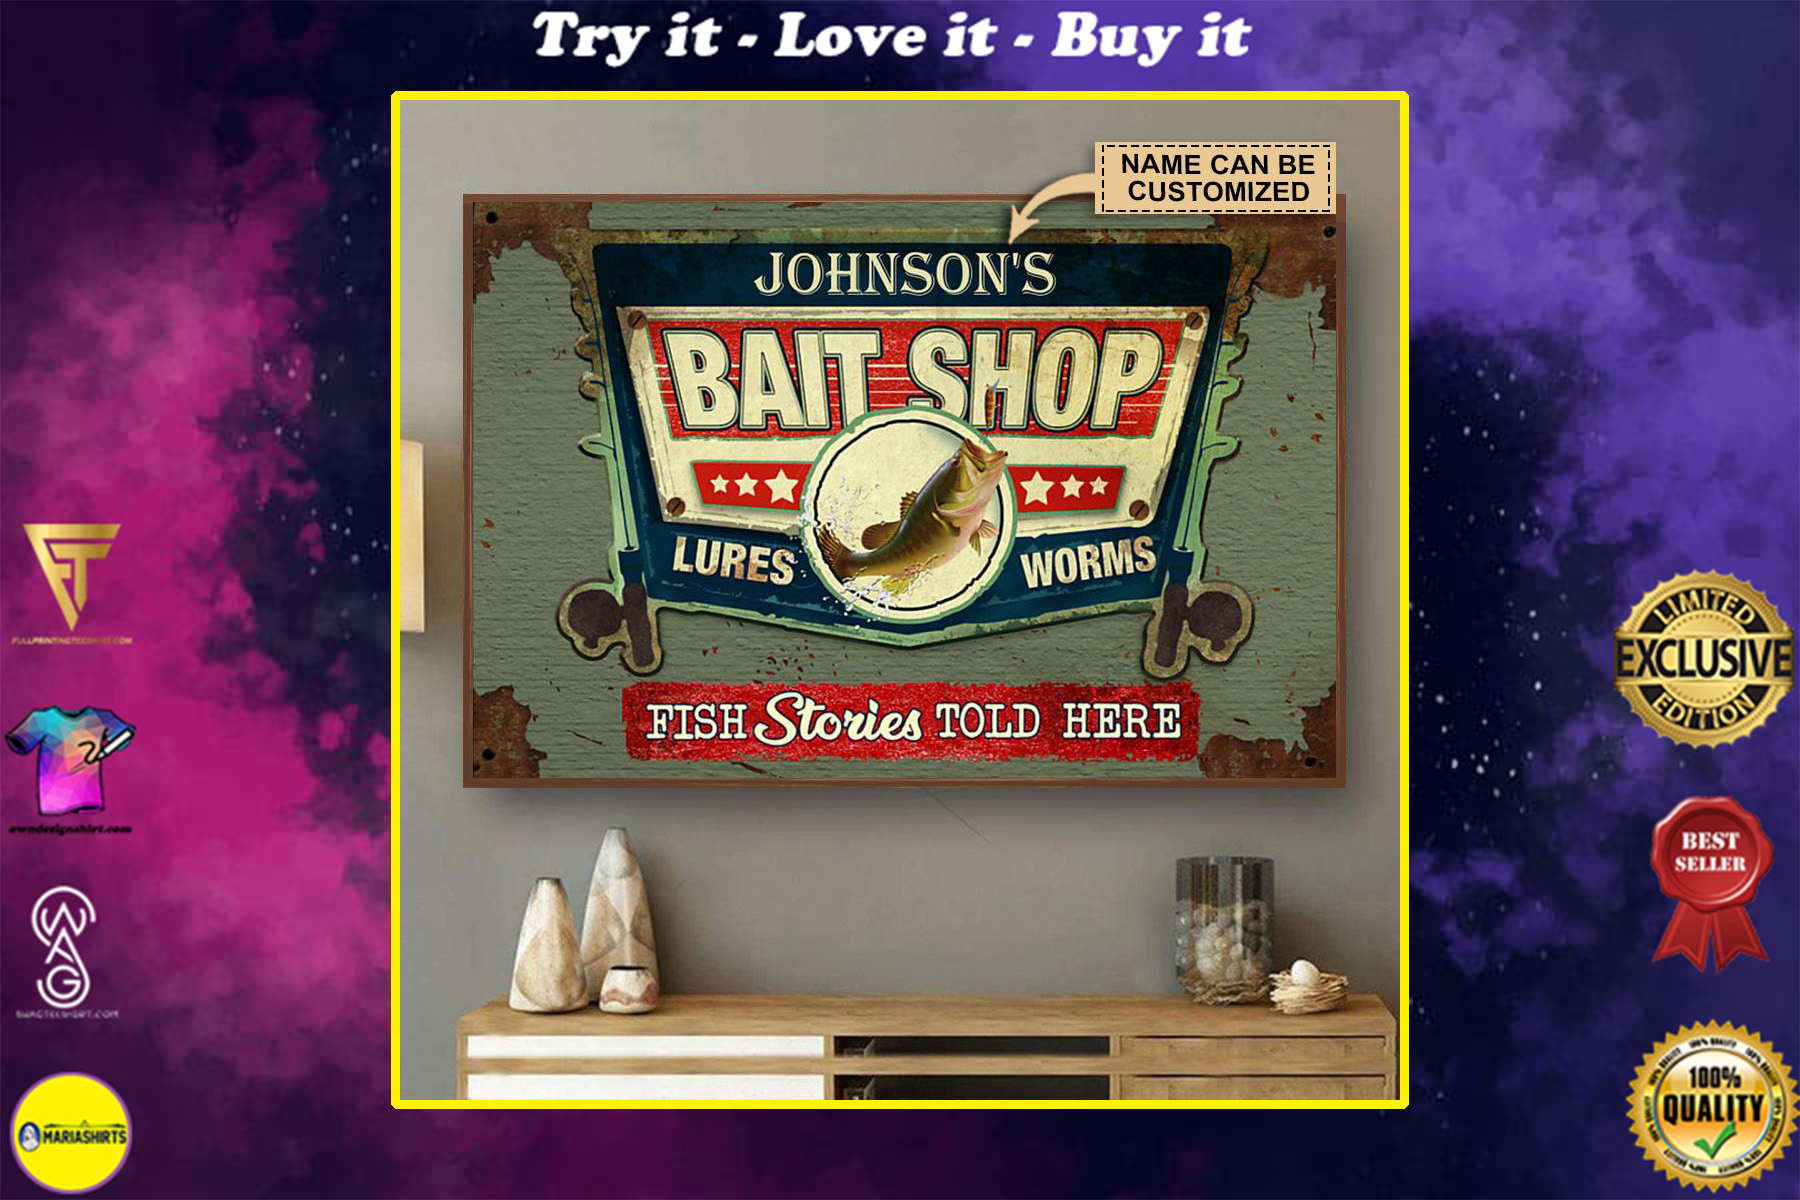 custom your name bait shop fish stories told here vintage poster